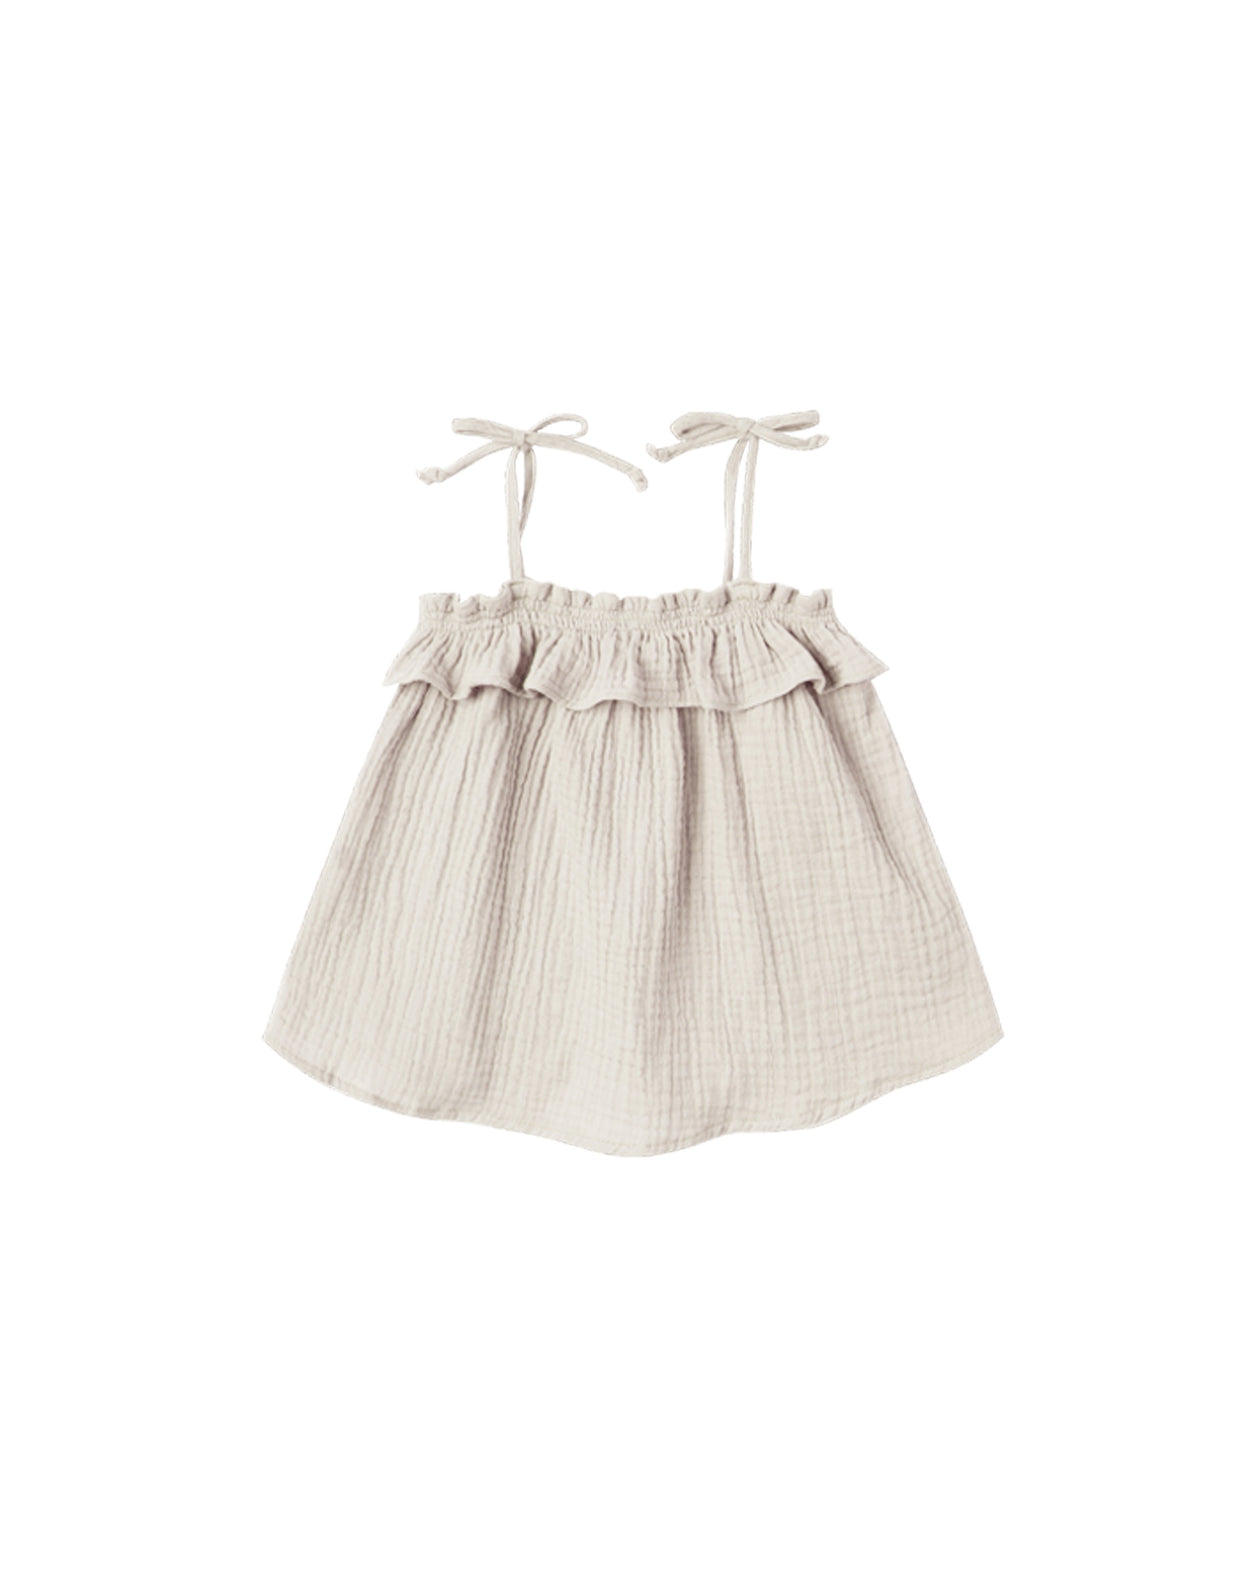 Ruffle Tube Top - Natural